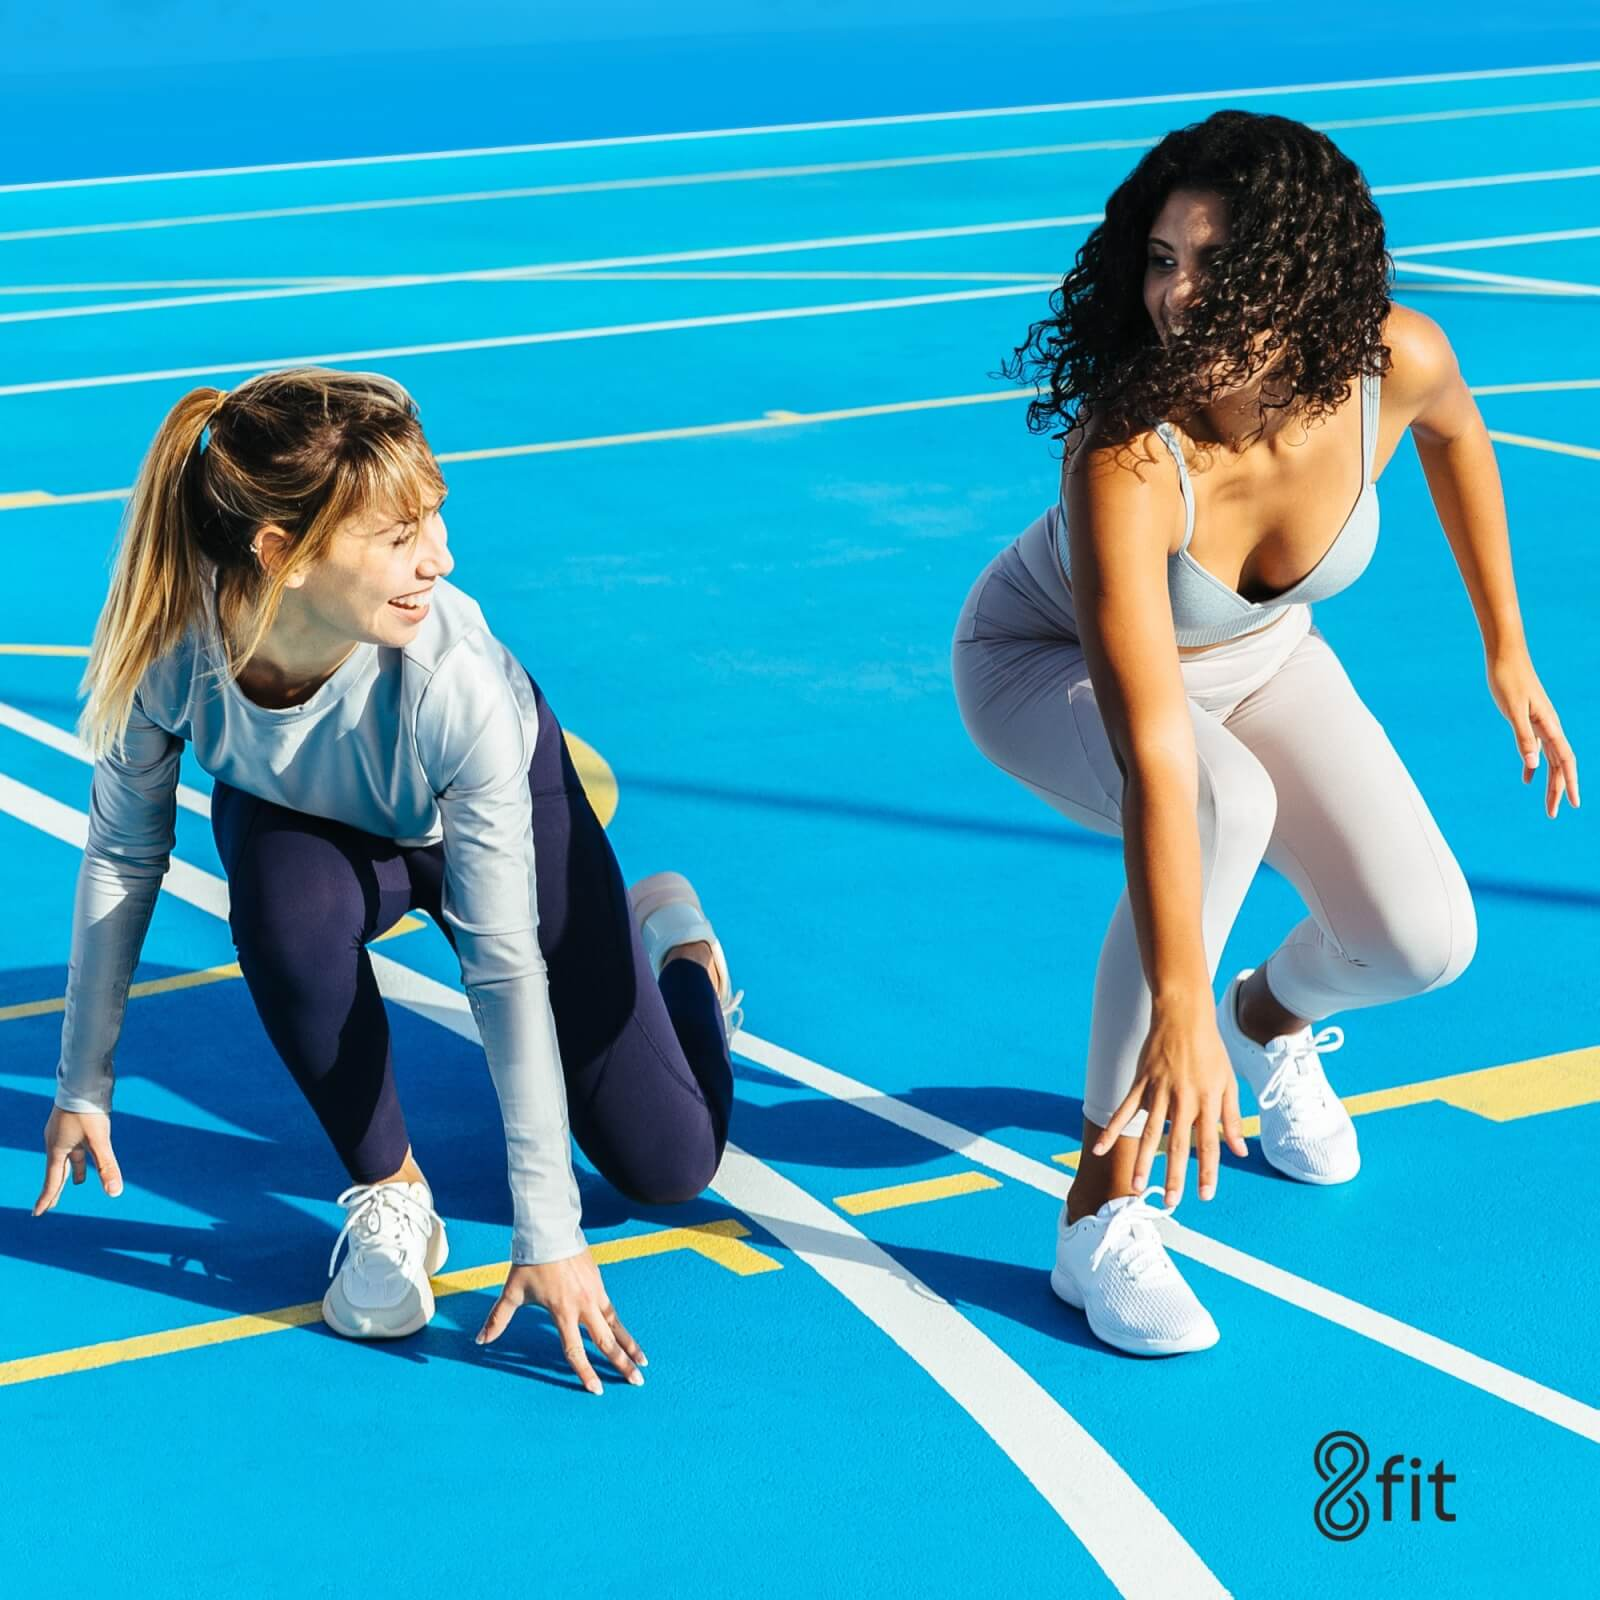 Image of Myprotein 8-FIT - 3 Month Free Trial (FR)